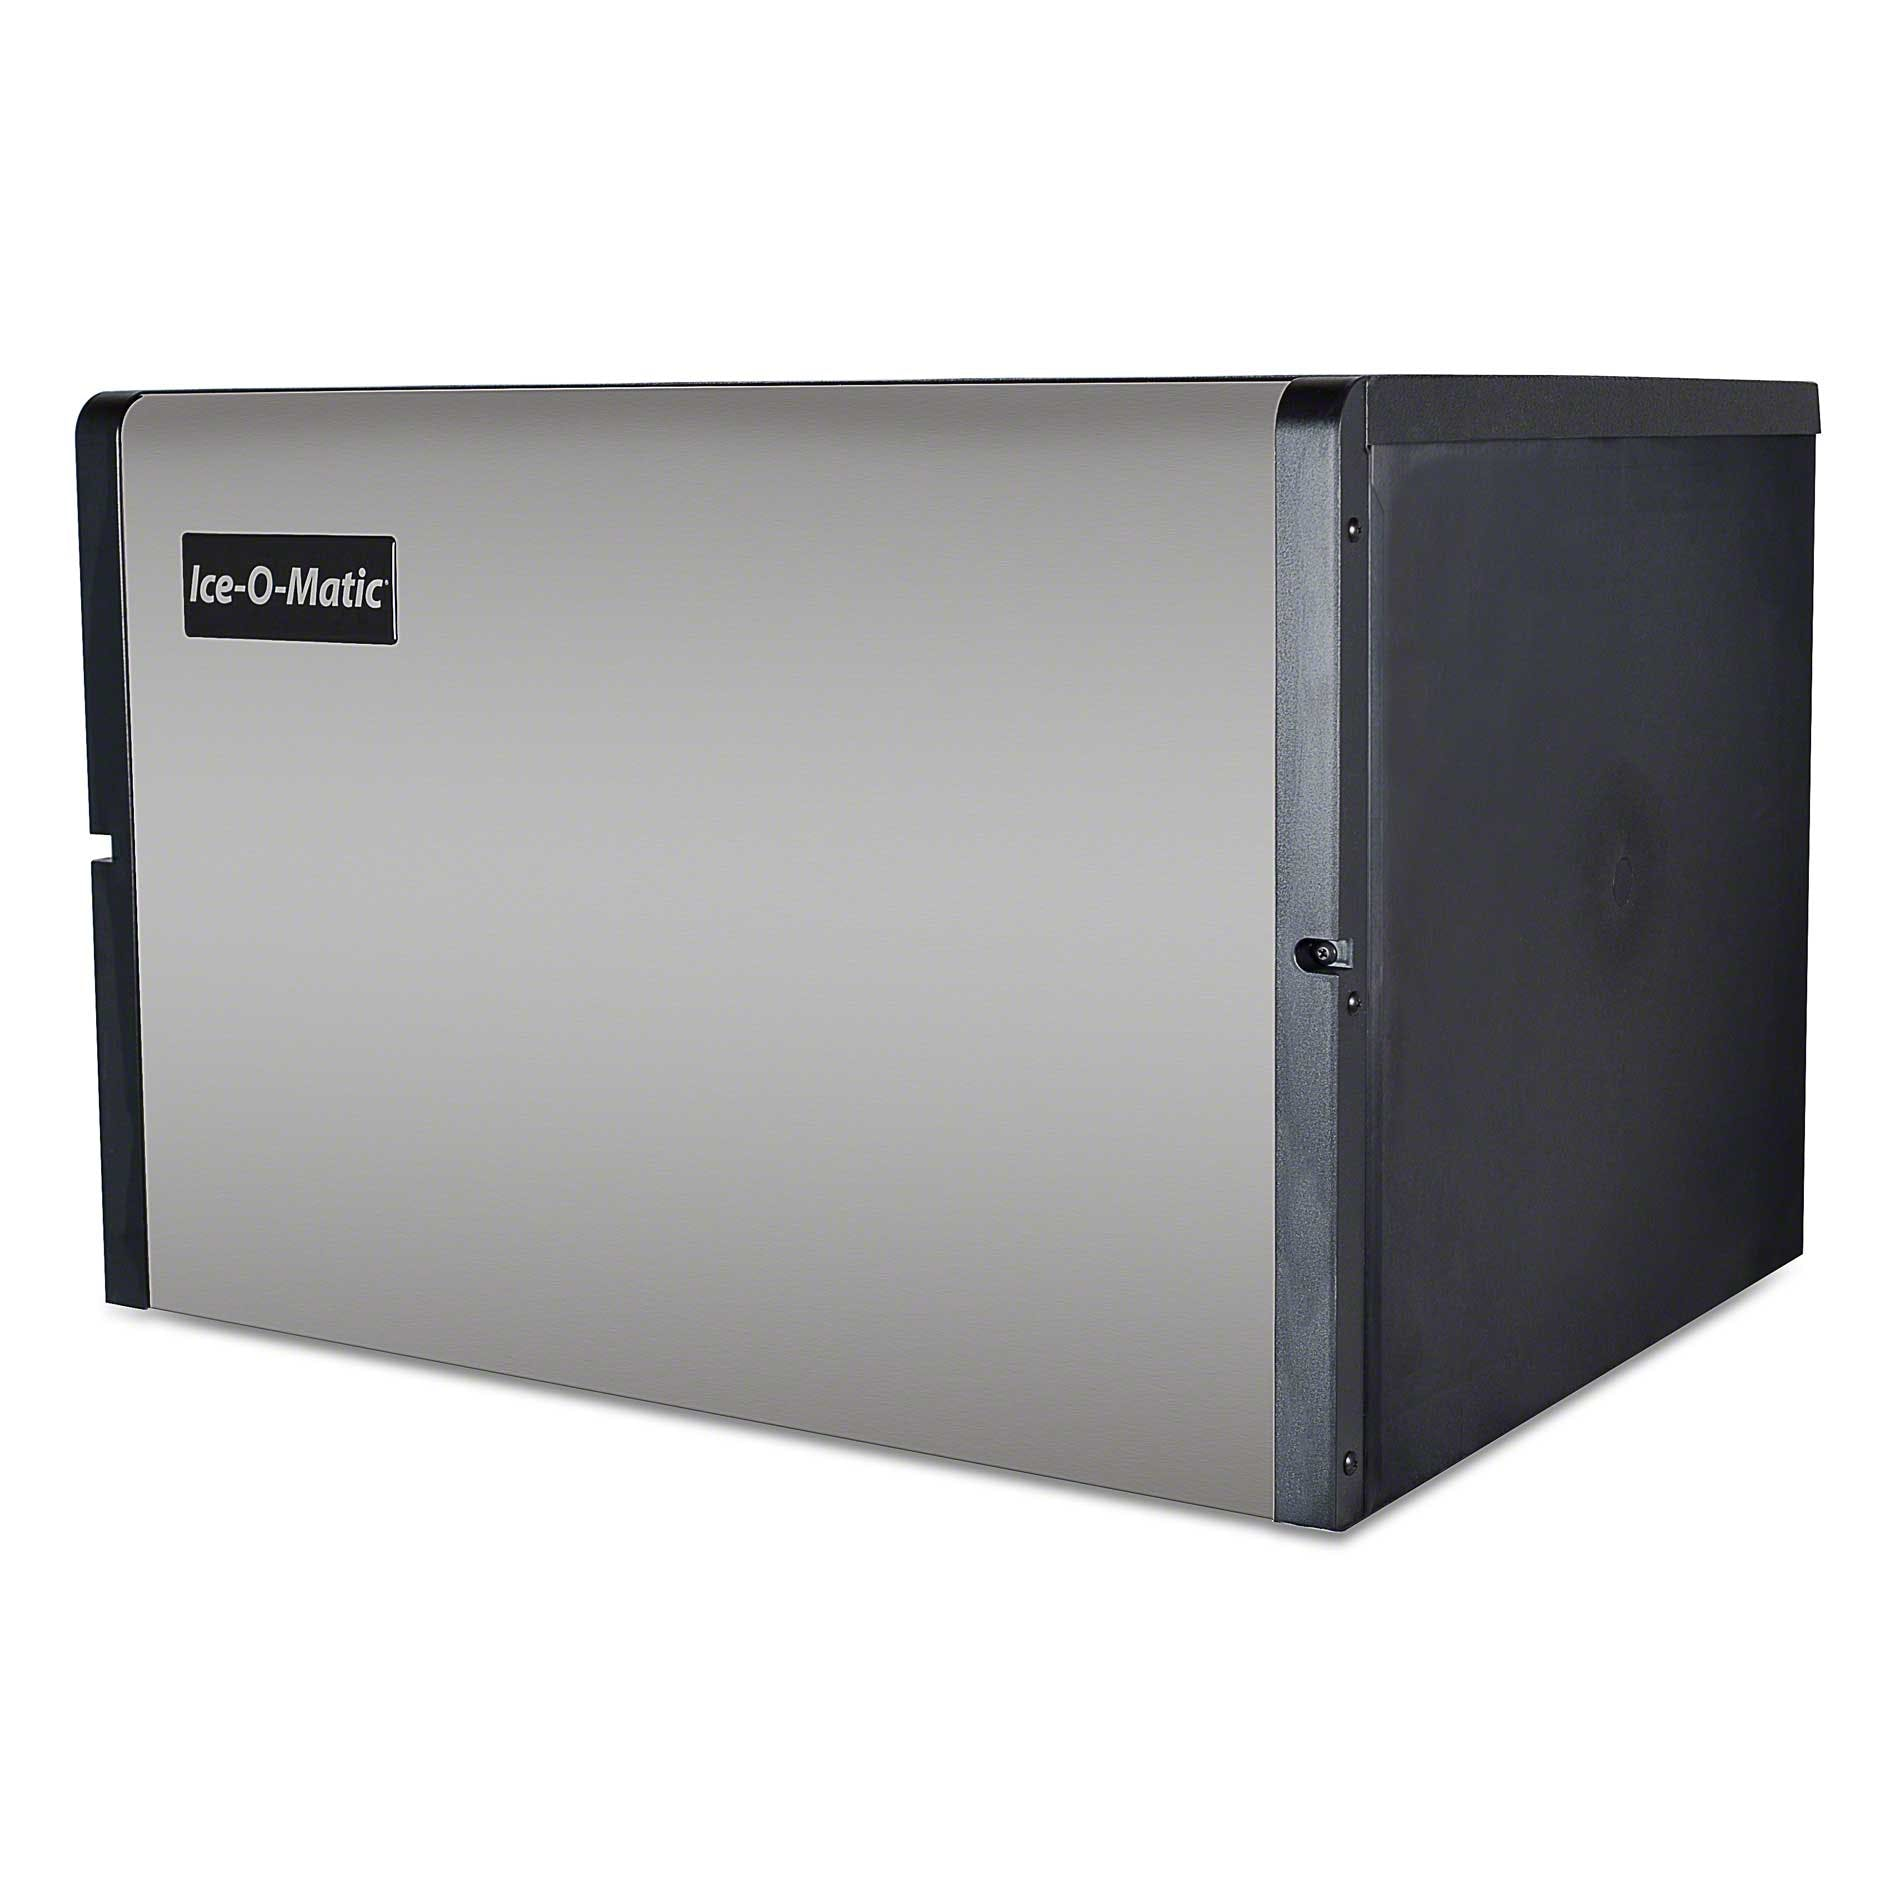 Ice-O-Matic - ICE0406FW 523 lb Full Cube Ice Machine - sold by Food Service Warehouse